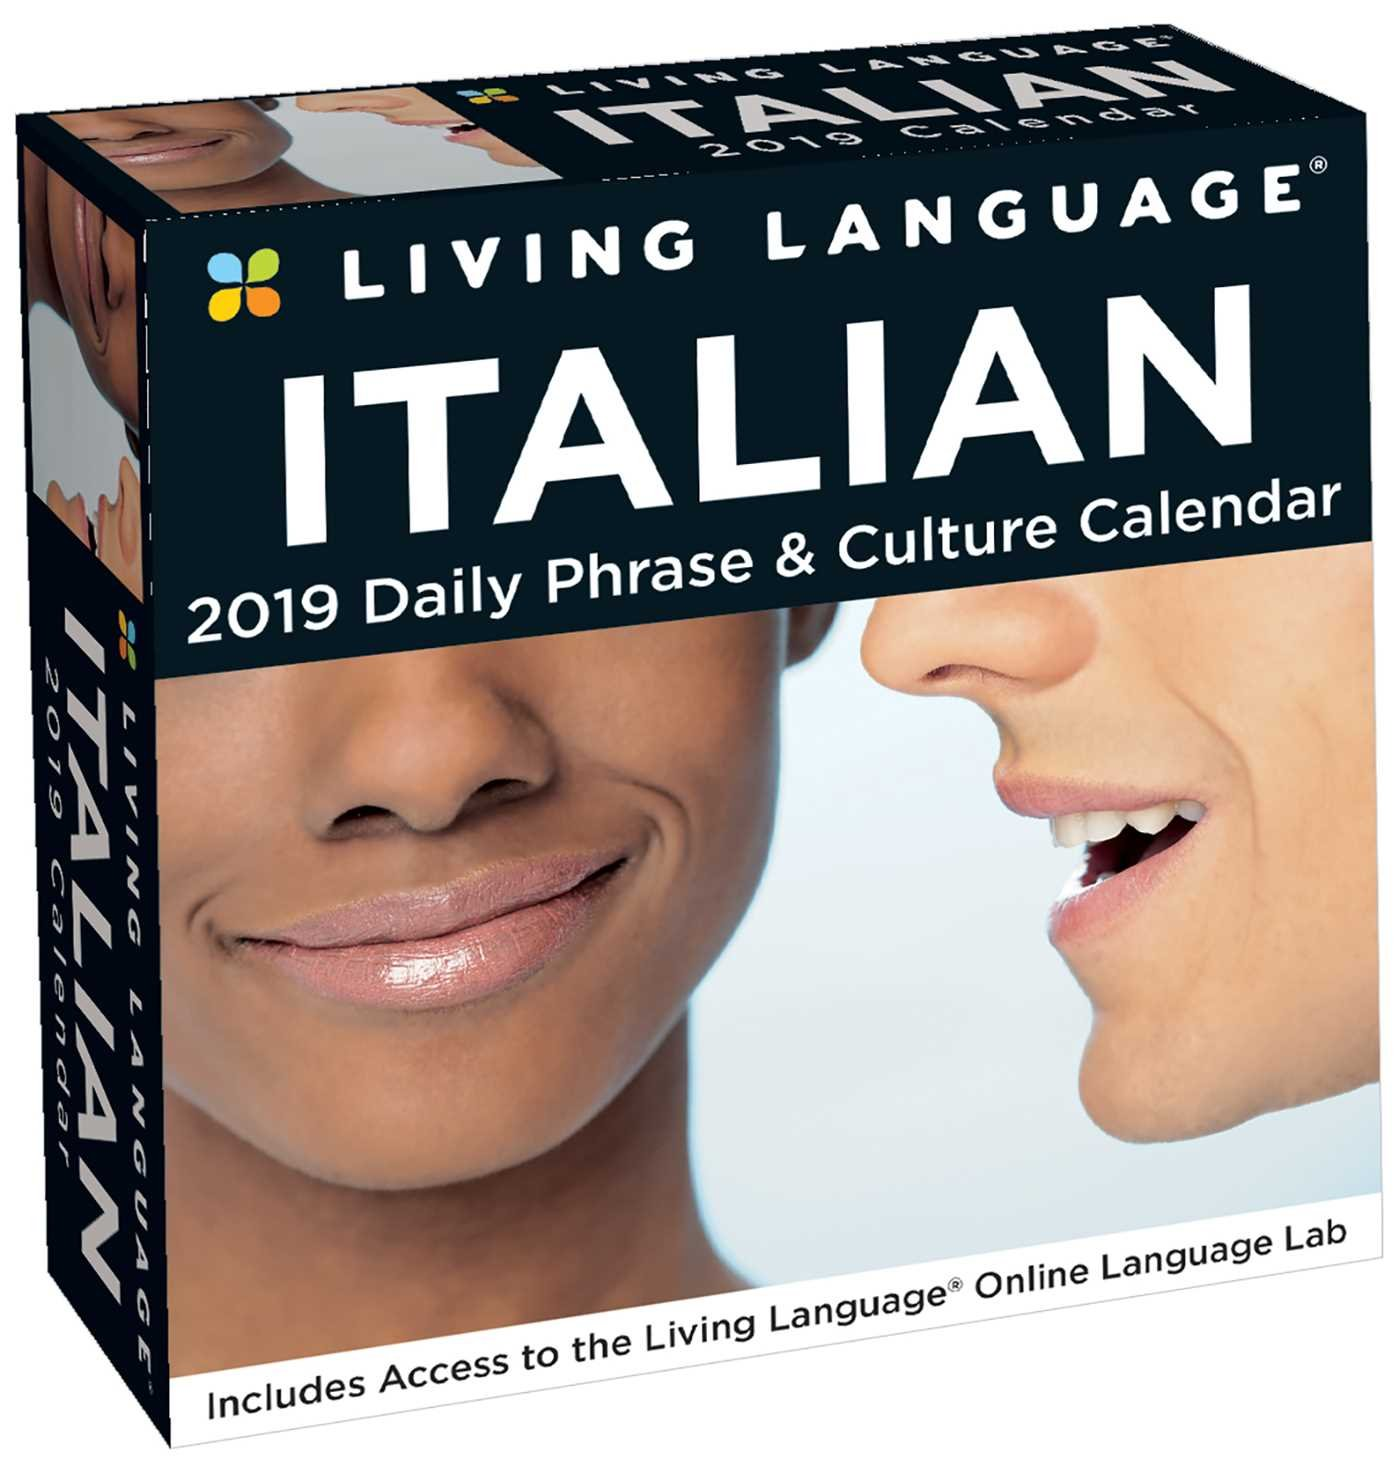 Living Language: Italian 2019 Day-to-Day Calendar by Andrews McMeel Publishing